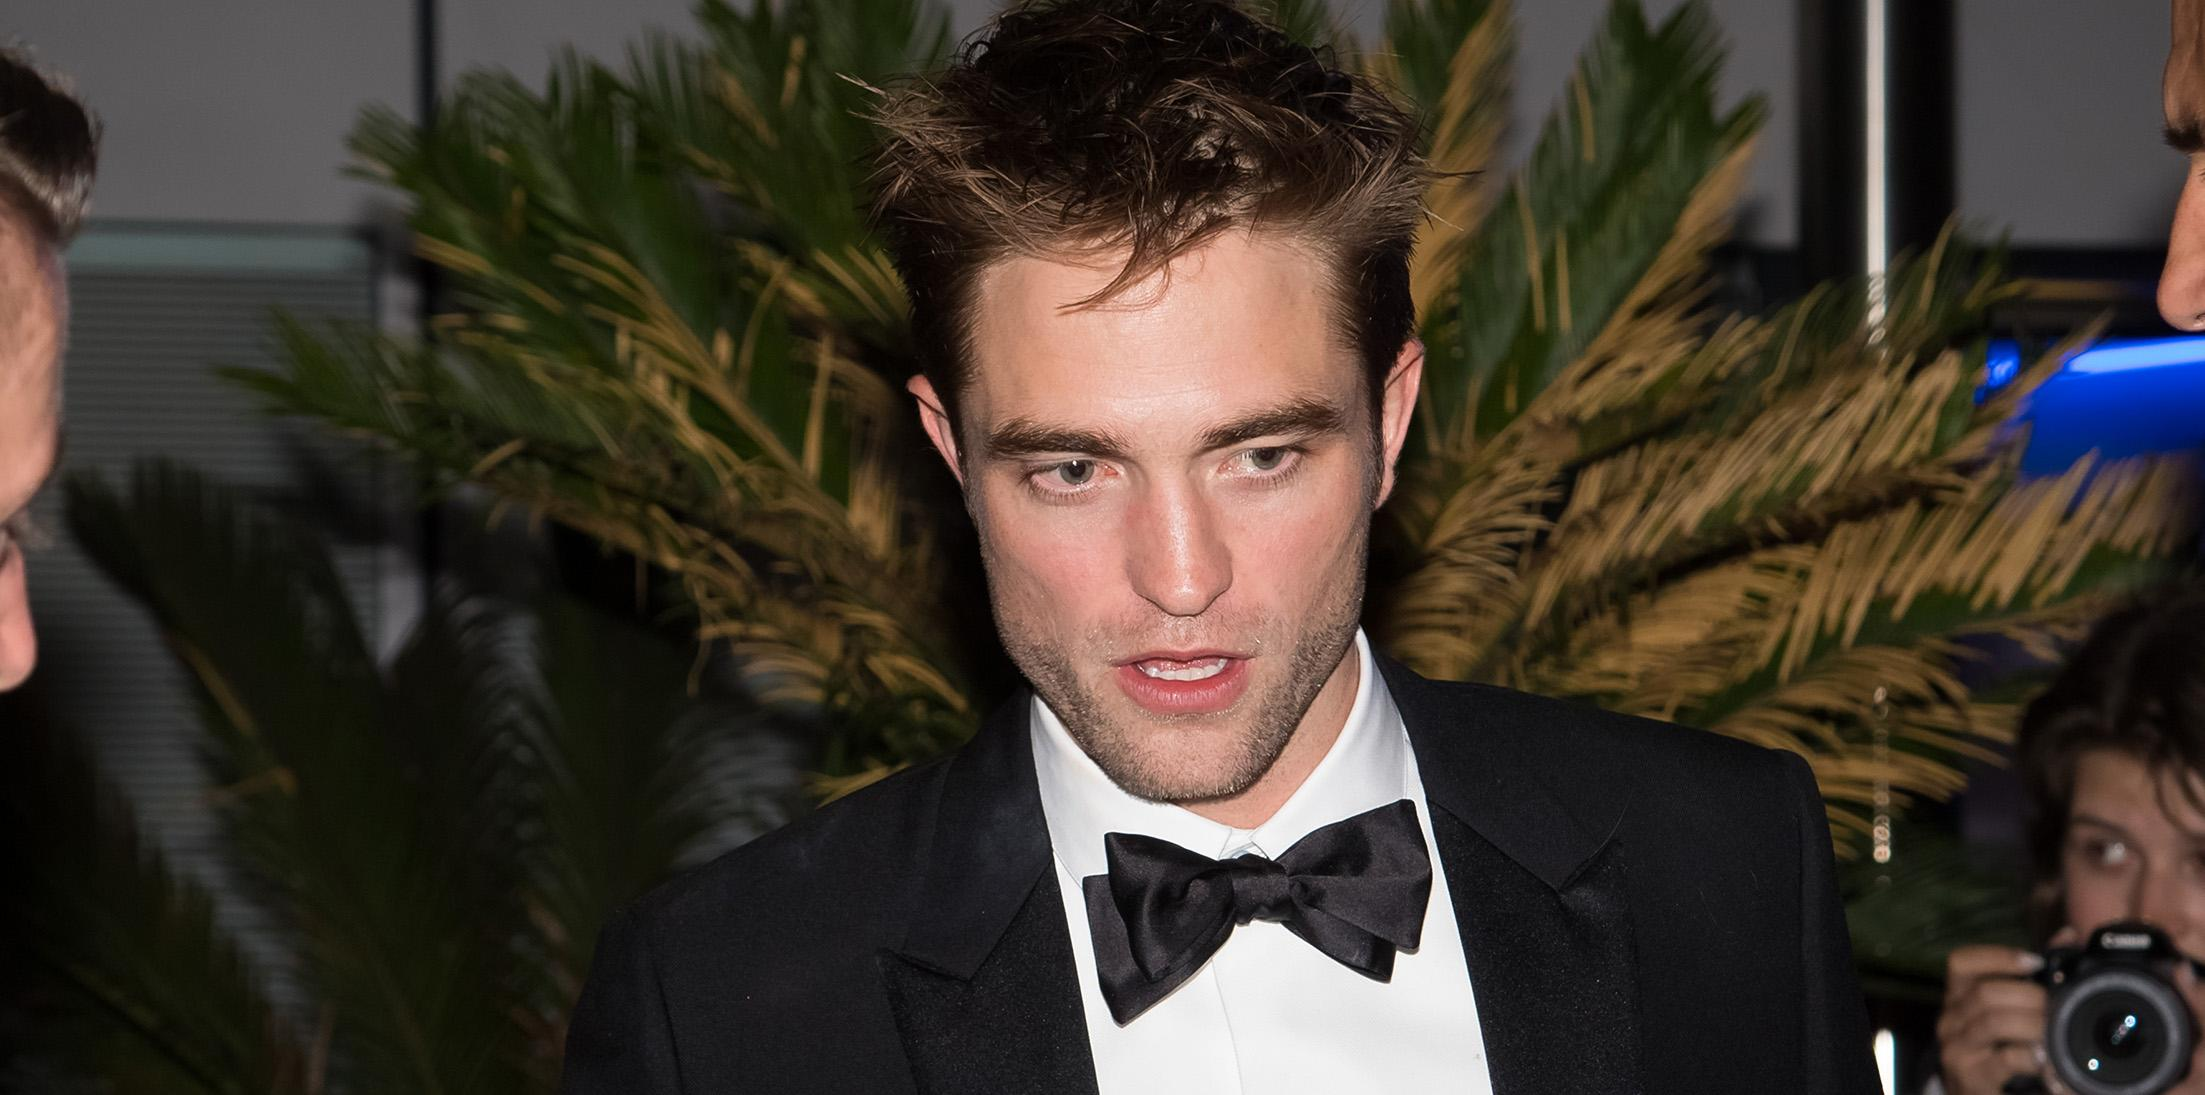 Robert Pattinson and FKA twigs in Cannes